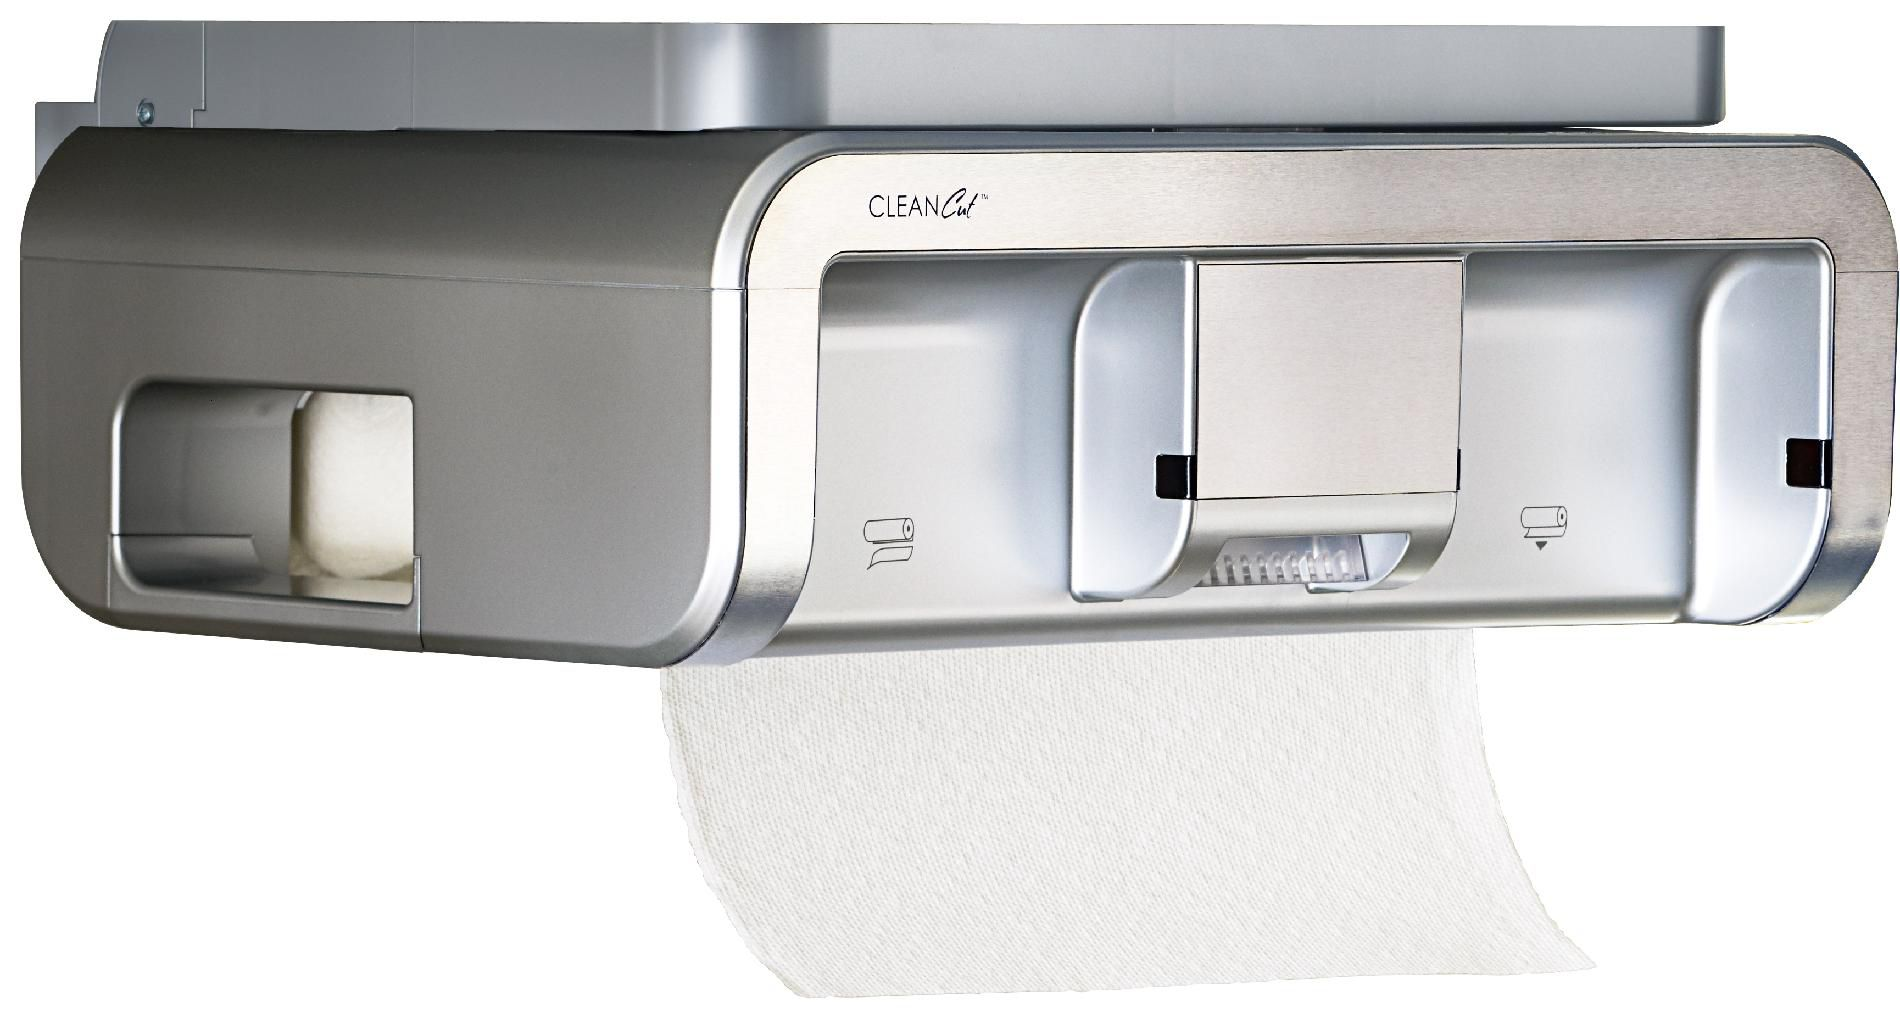 automatic paper towel dispenser for kitchen painting cabinets ideas find price of cleancut cc3300 touchless